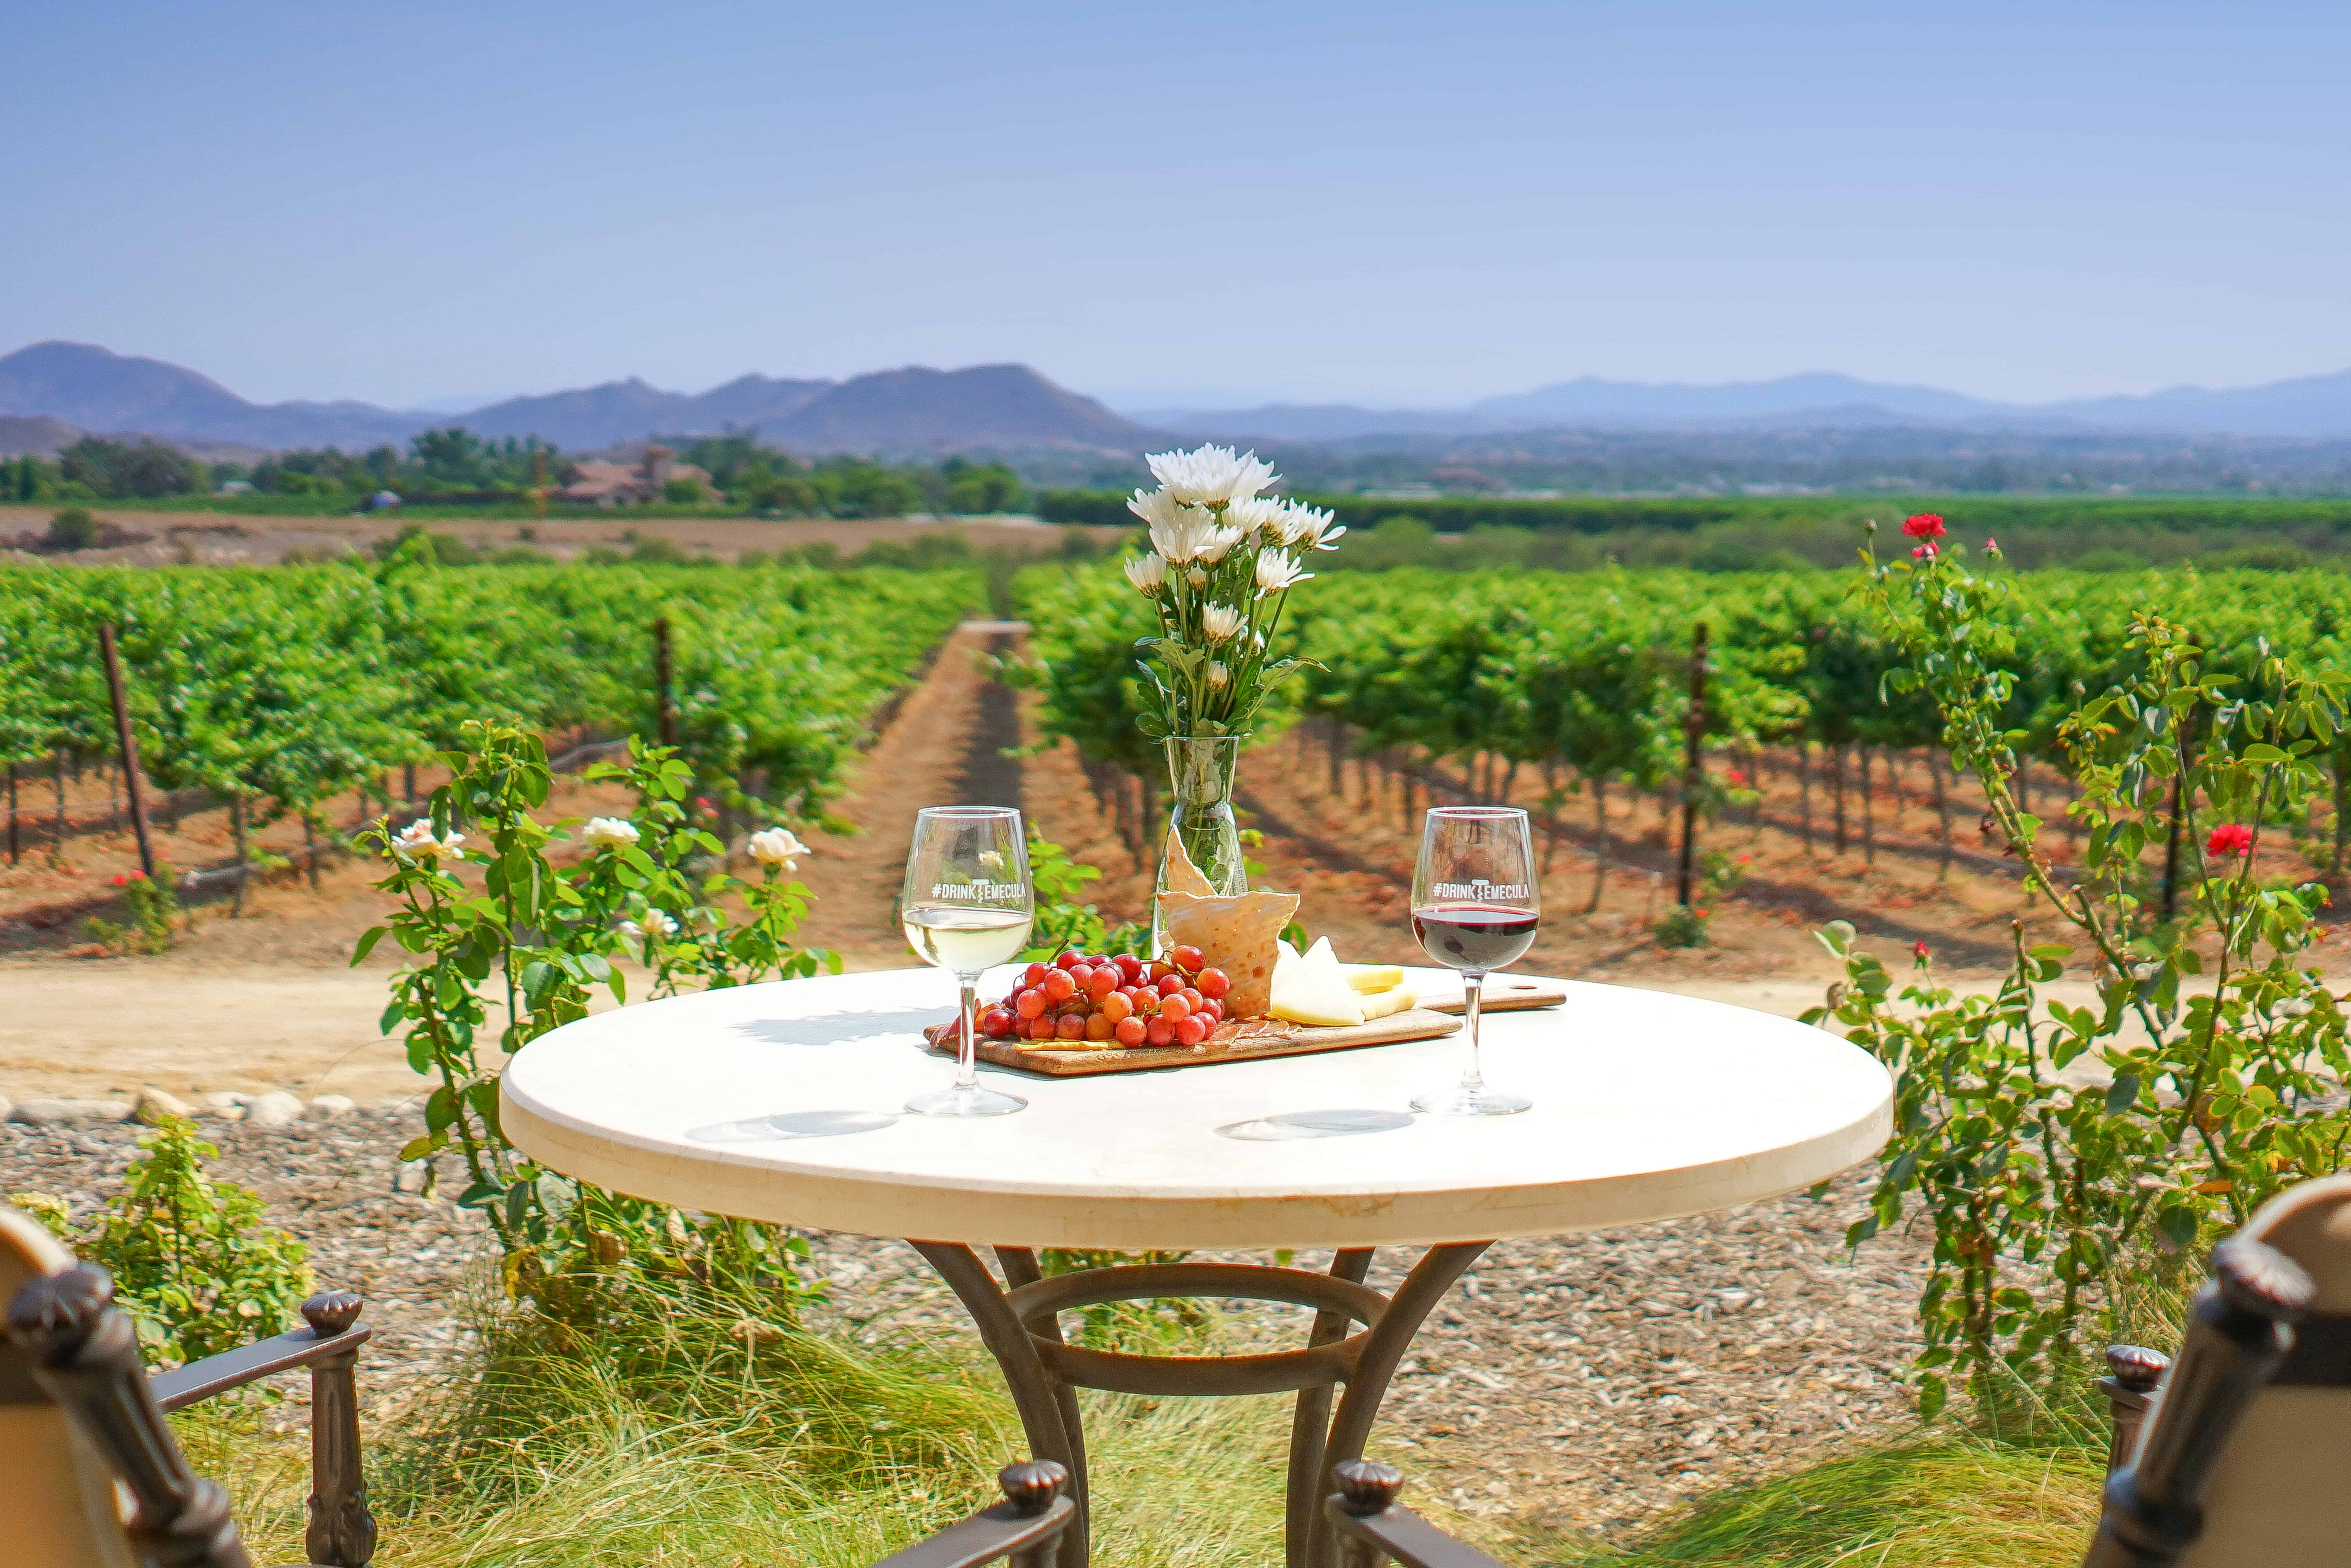 Enjoying Wine and cheese overlooking the Temecula Valley wine country